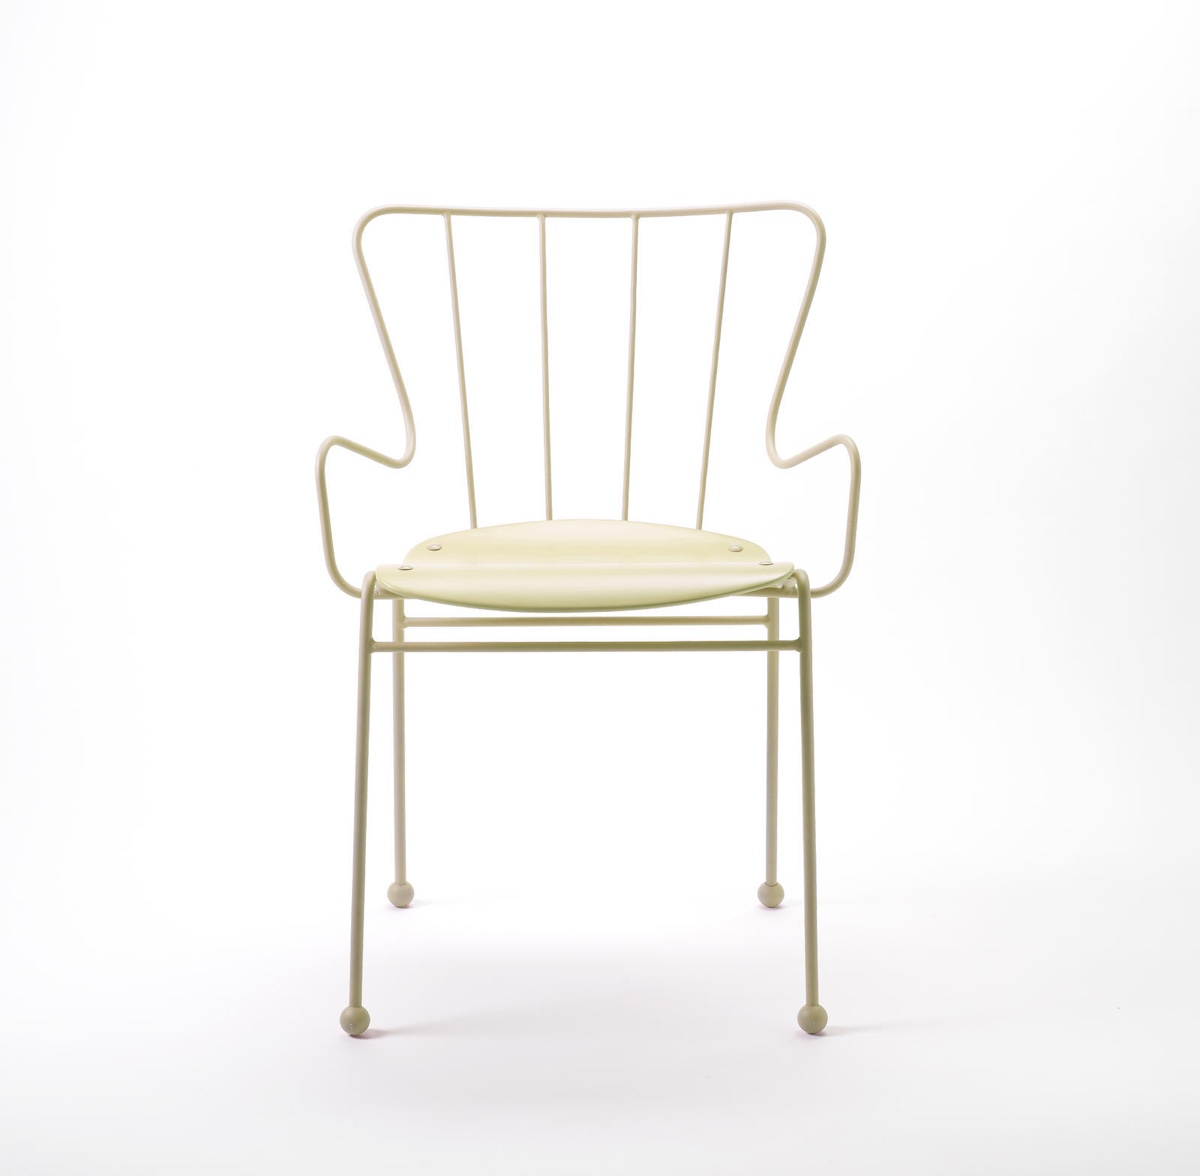 Antelope chair in white